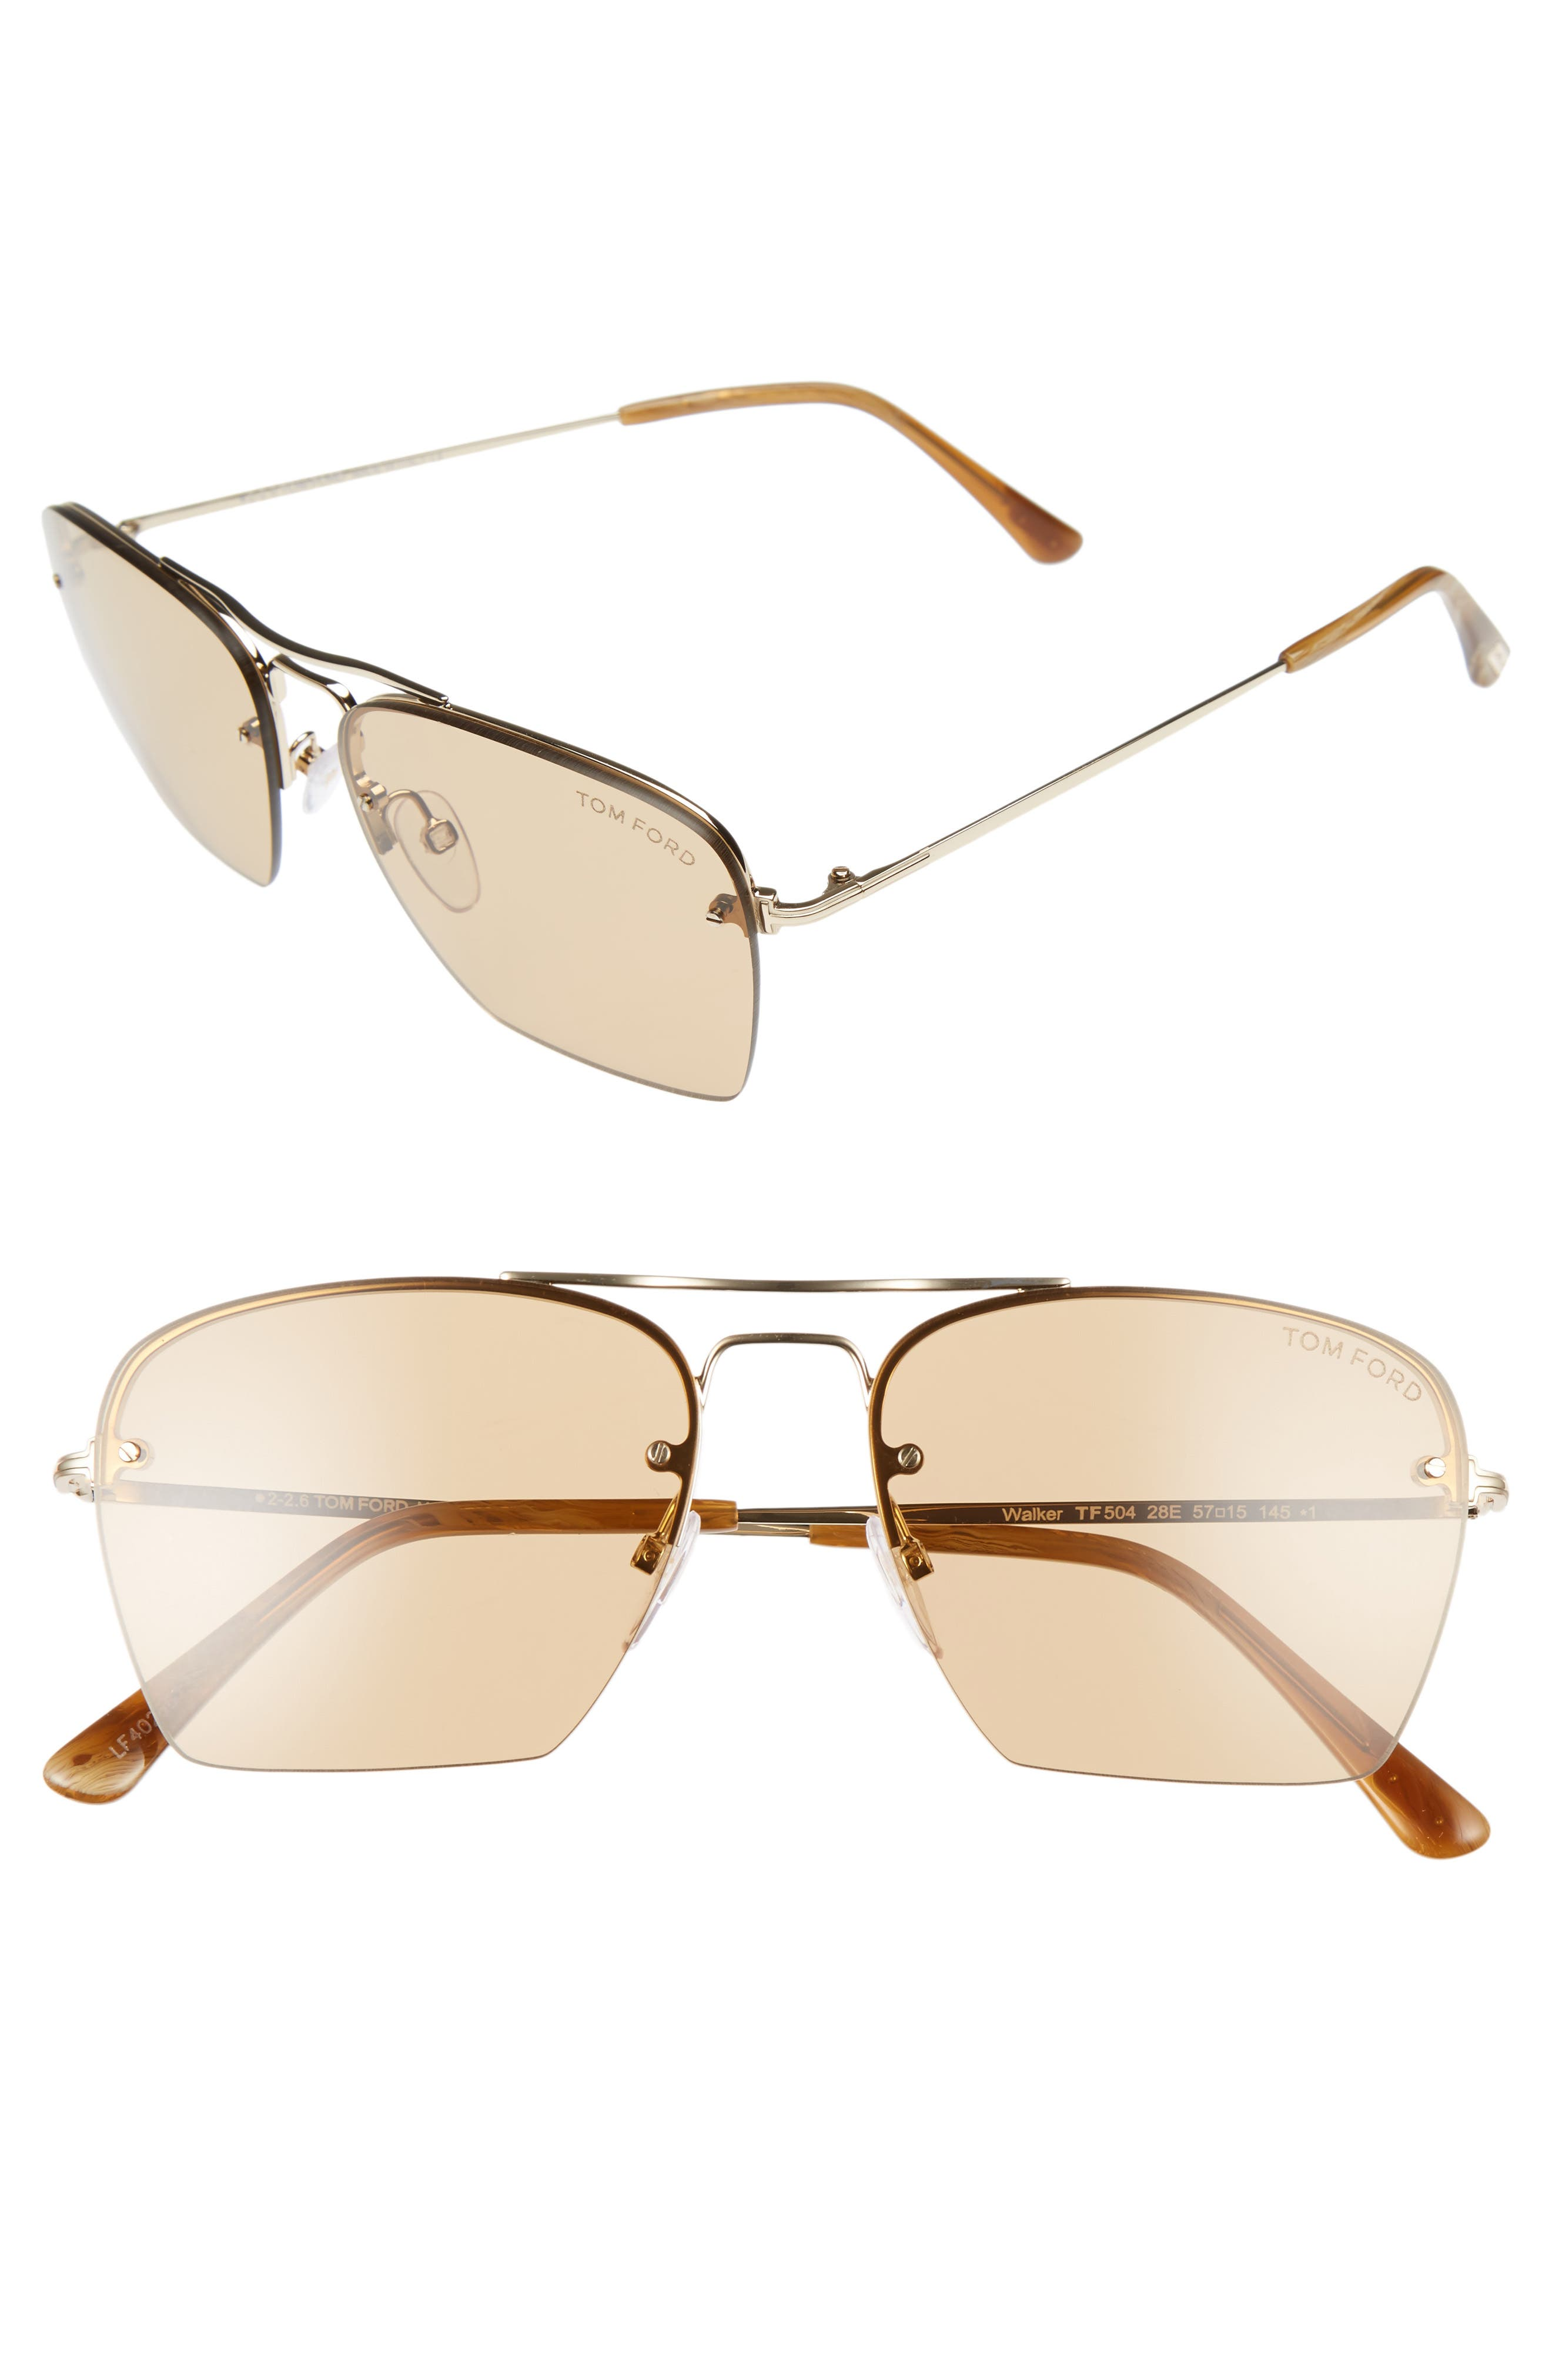 Main Image - Tom Ford Walker 57mm Semi Rimless Square Sunglasses